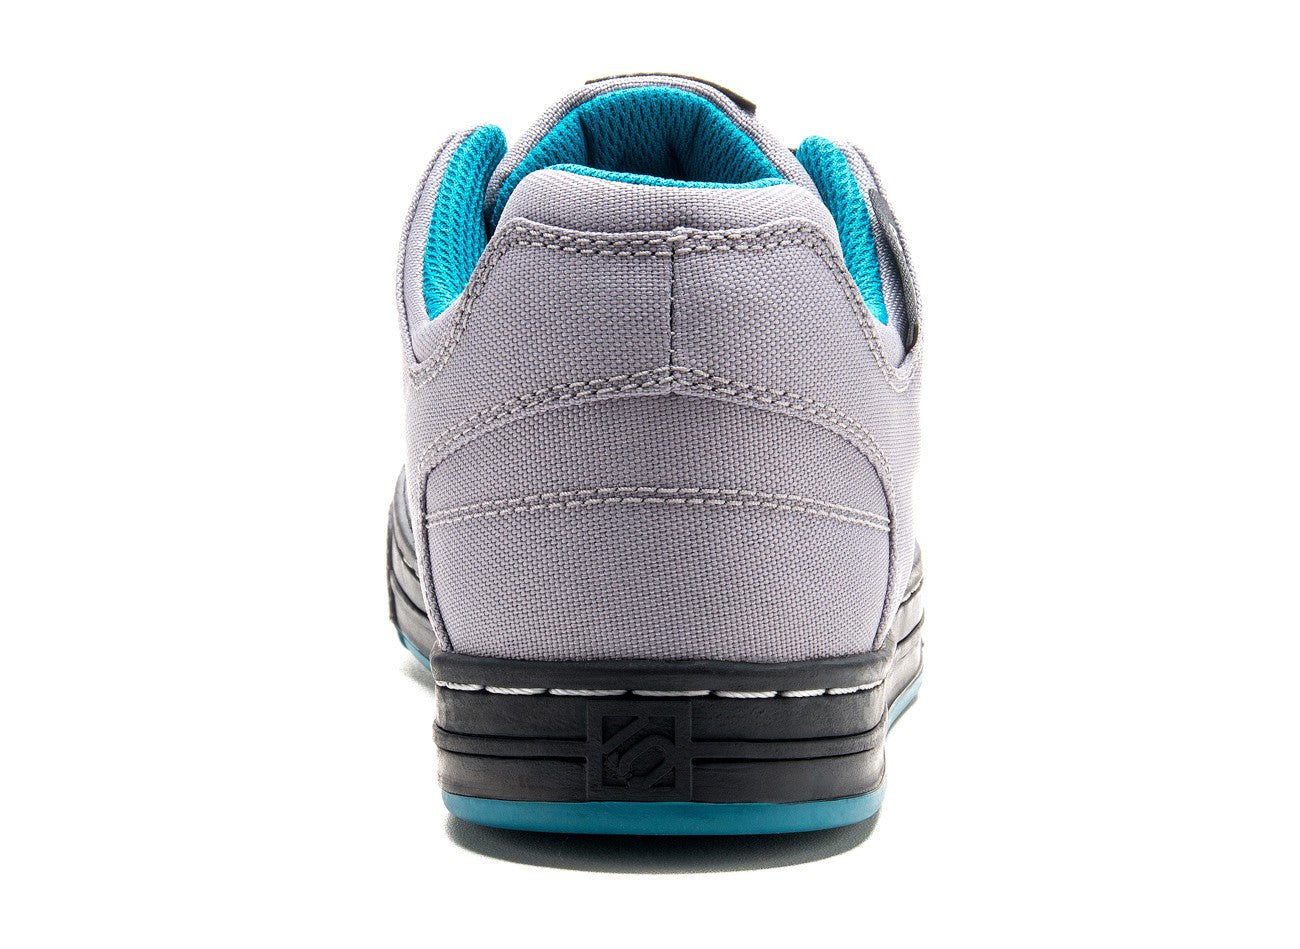 Freerider Canvas WMNS- Grey / Teal by 510